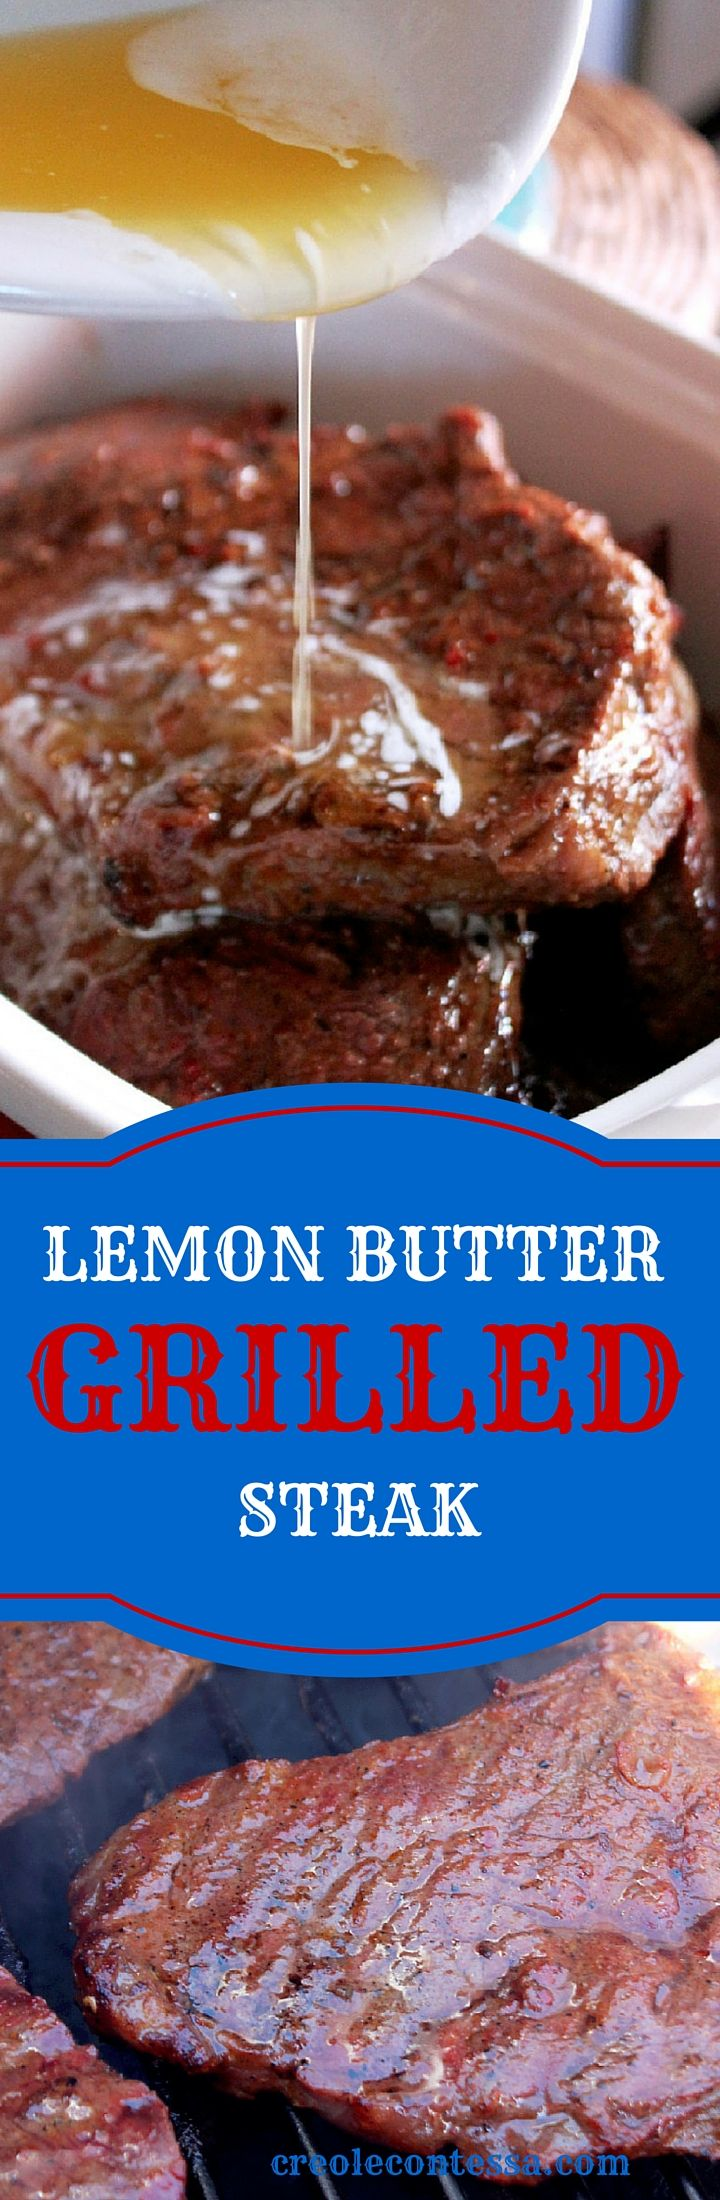 Lemon Butter Grilled Steaks